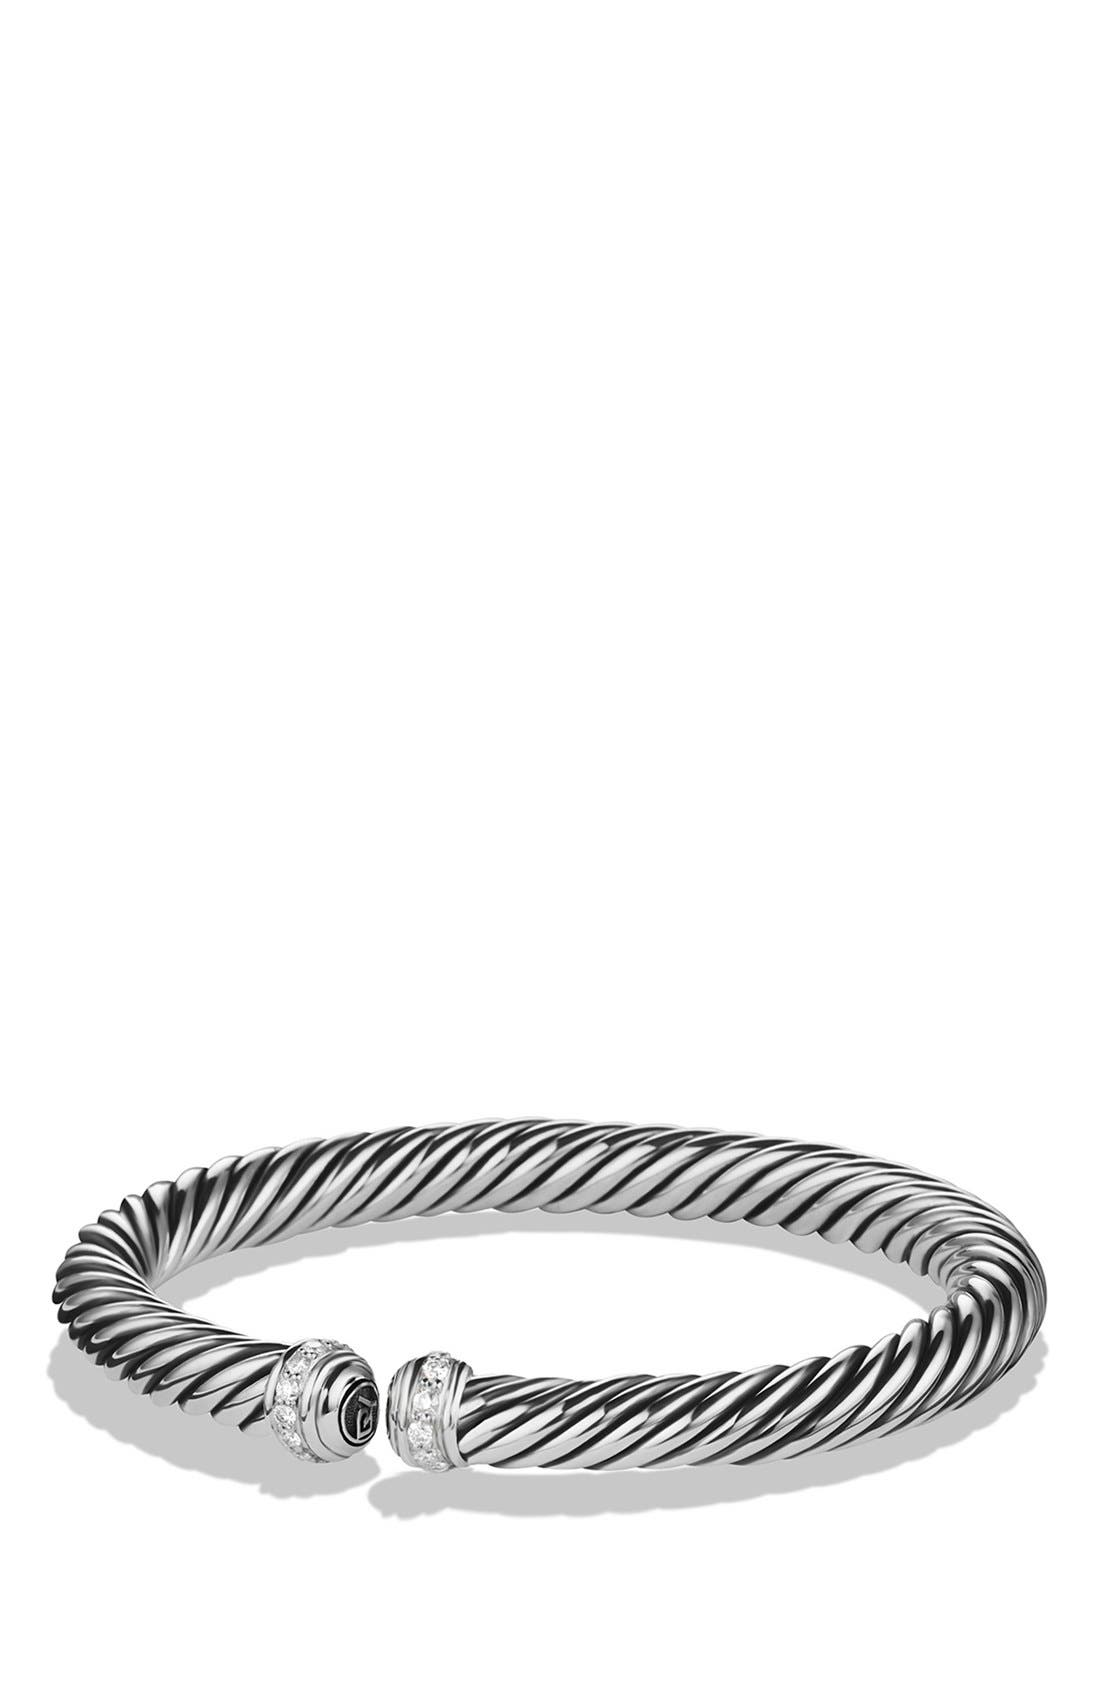 Alternate Image 1 Selected - David Yurman 'Cable Classics' Cable Spira Bracelet with Diamonds